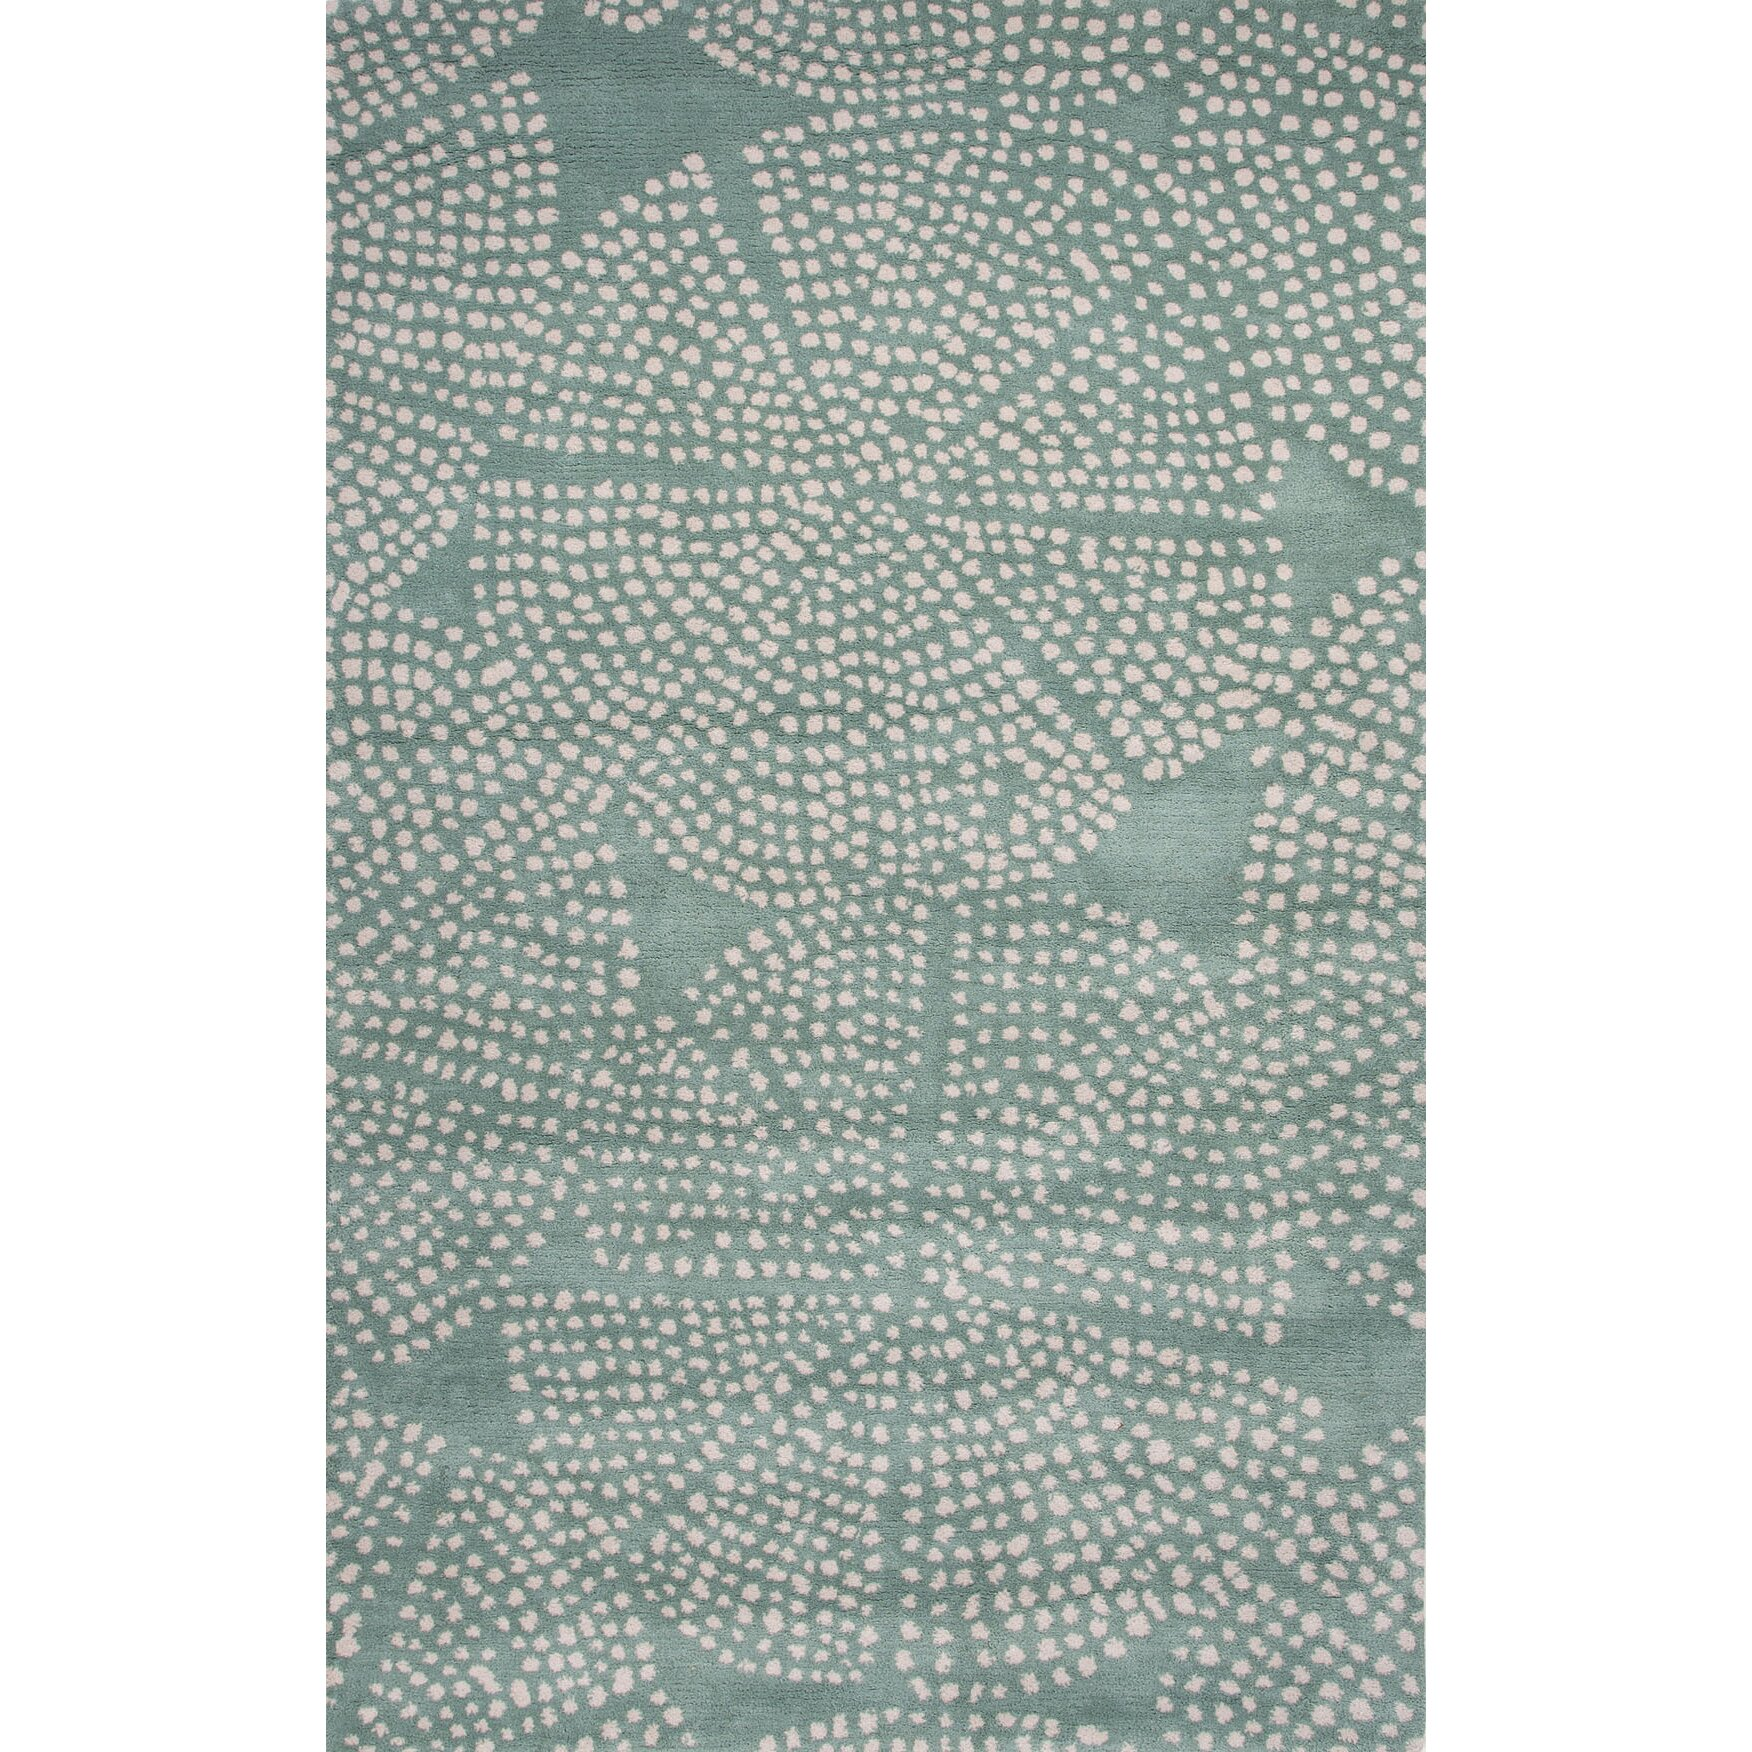 Coastal Area Rug Seascapes Wave Design Coastal Area Rugs